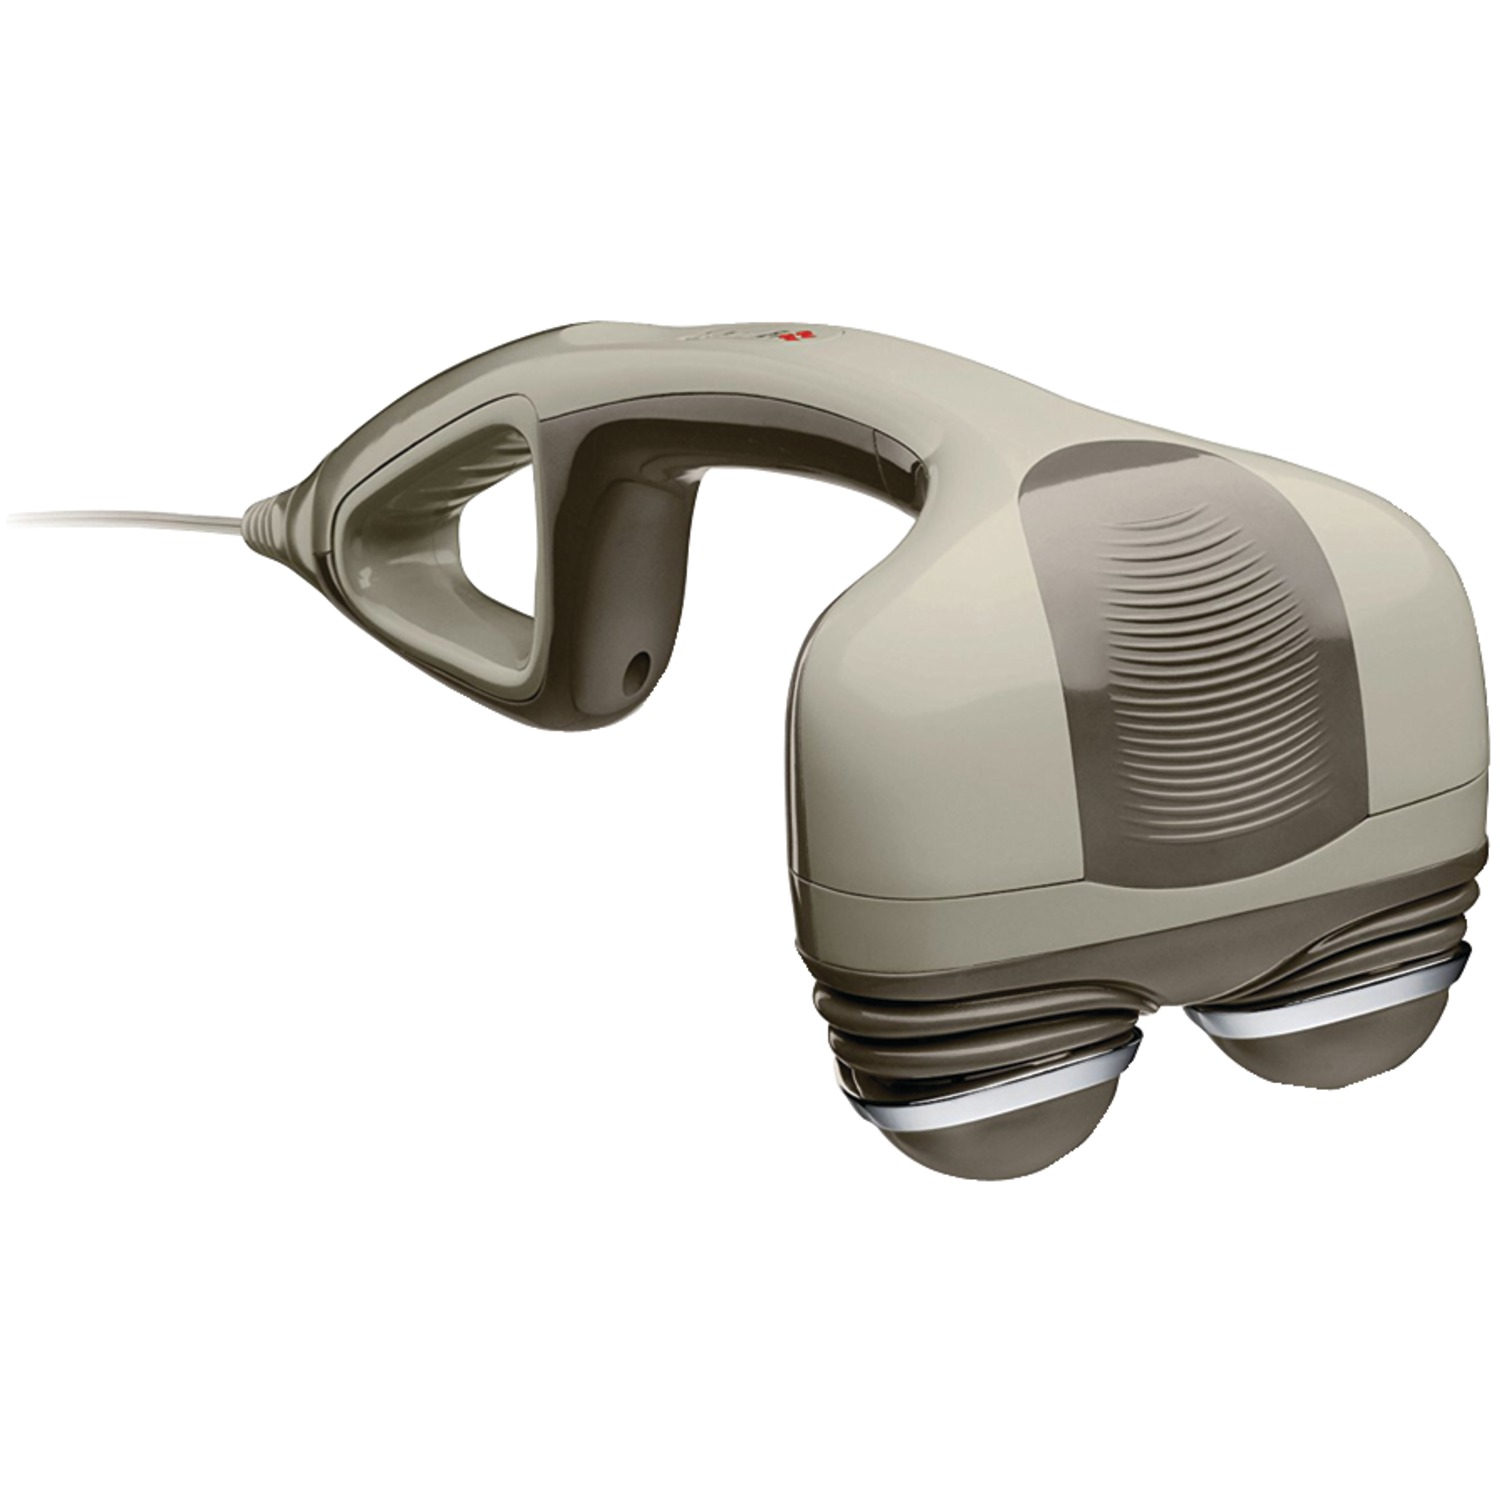 HoMedics Percussion Pro Handheld Massager With Heat, Variable Speed Control, Dual Pivoting Heads (HHP-350H)